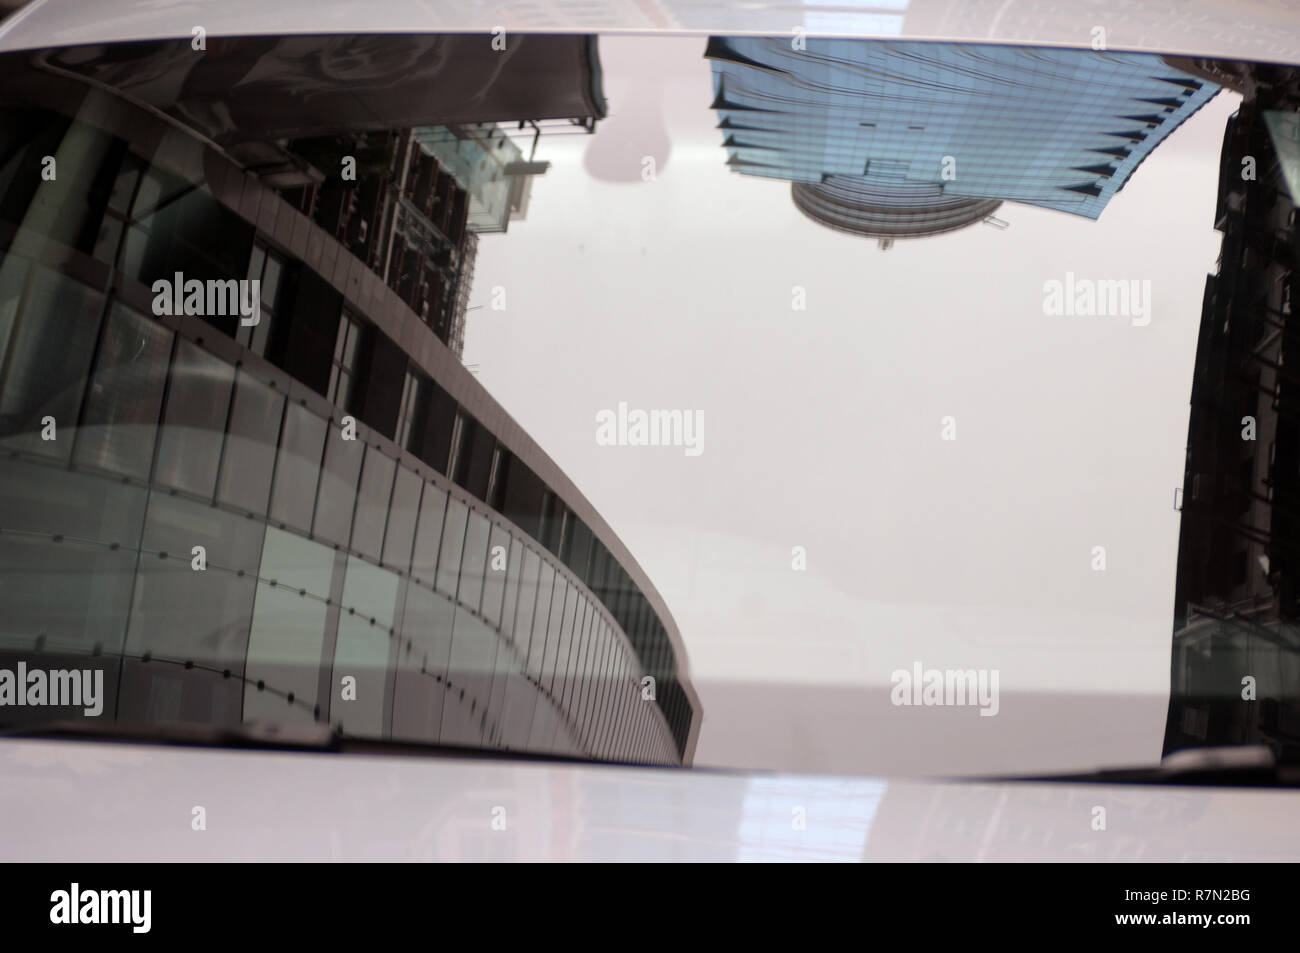 Reflection of high rise office buildings in a car windscreen, Hong Kong, China. Stock Photo